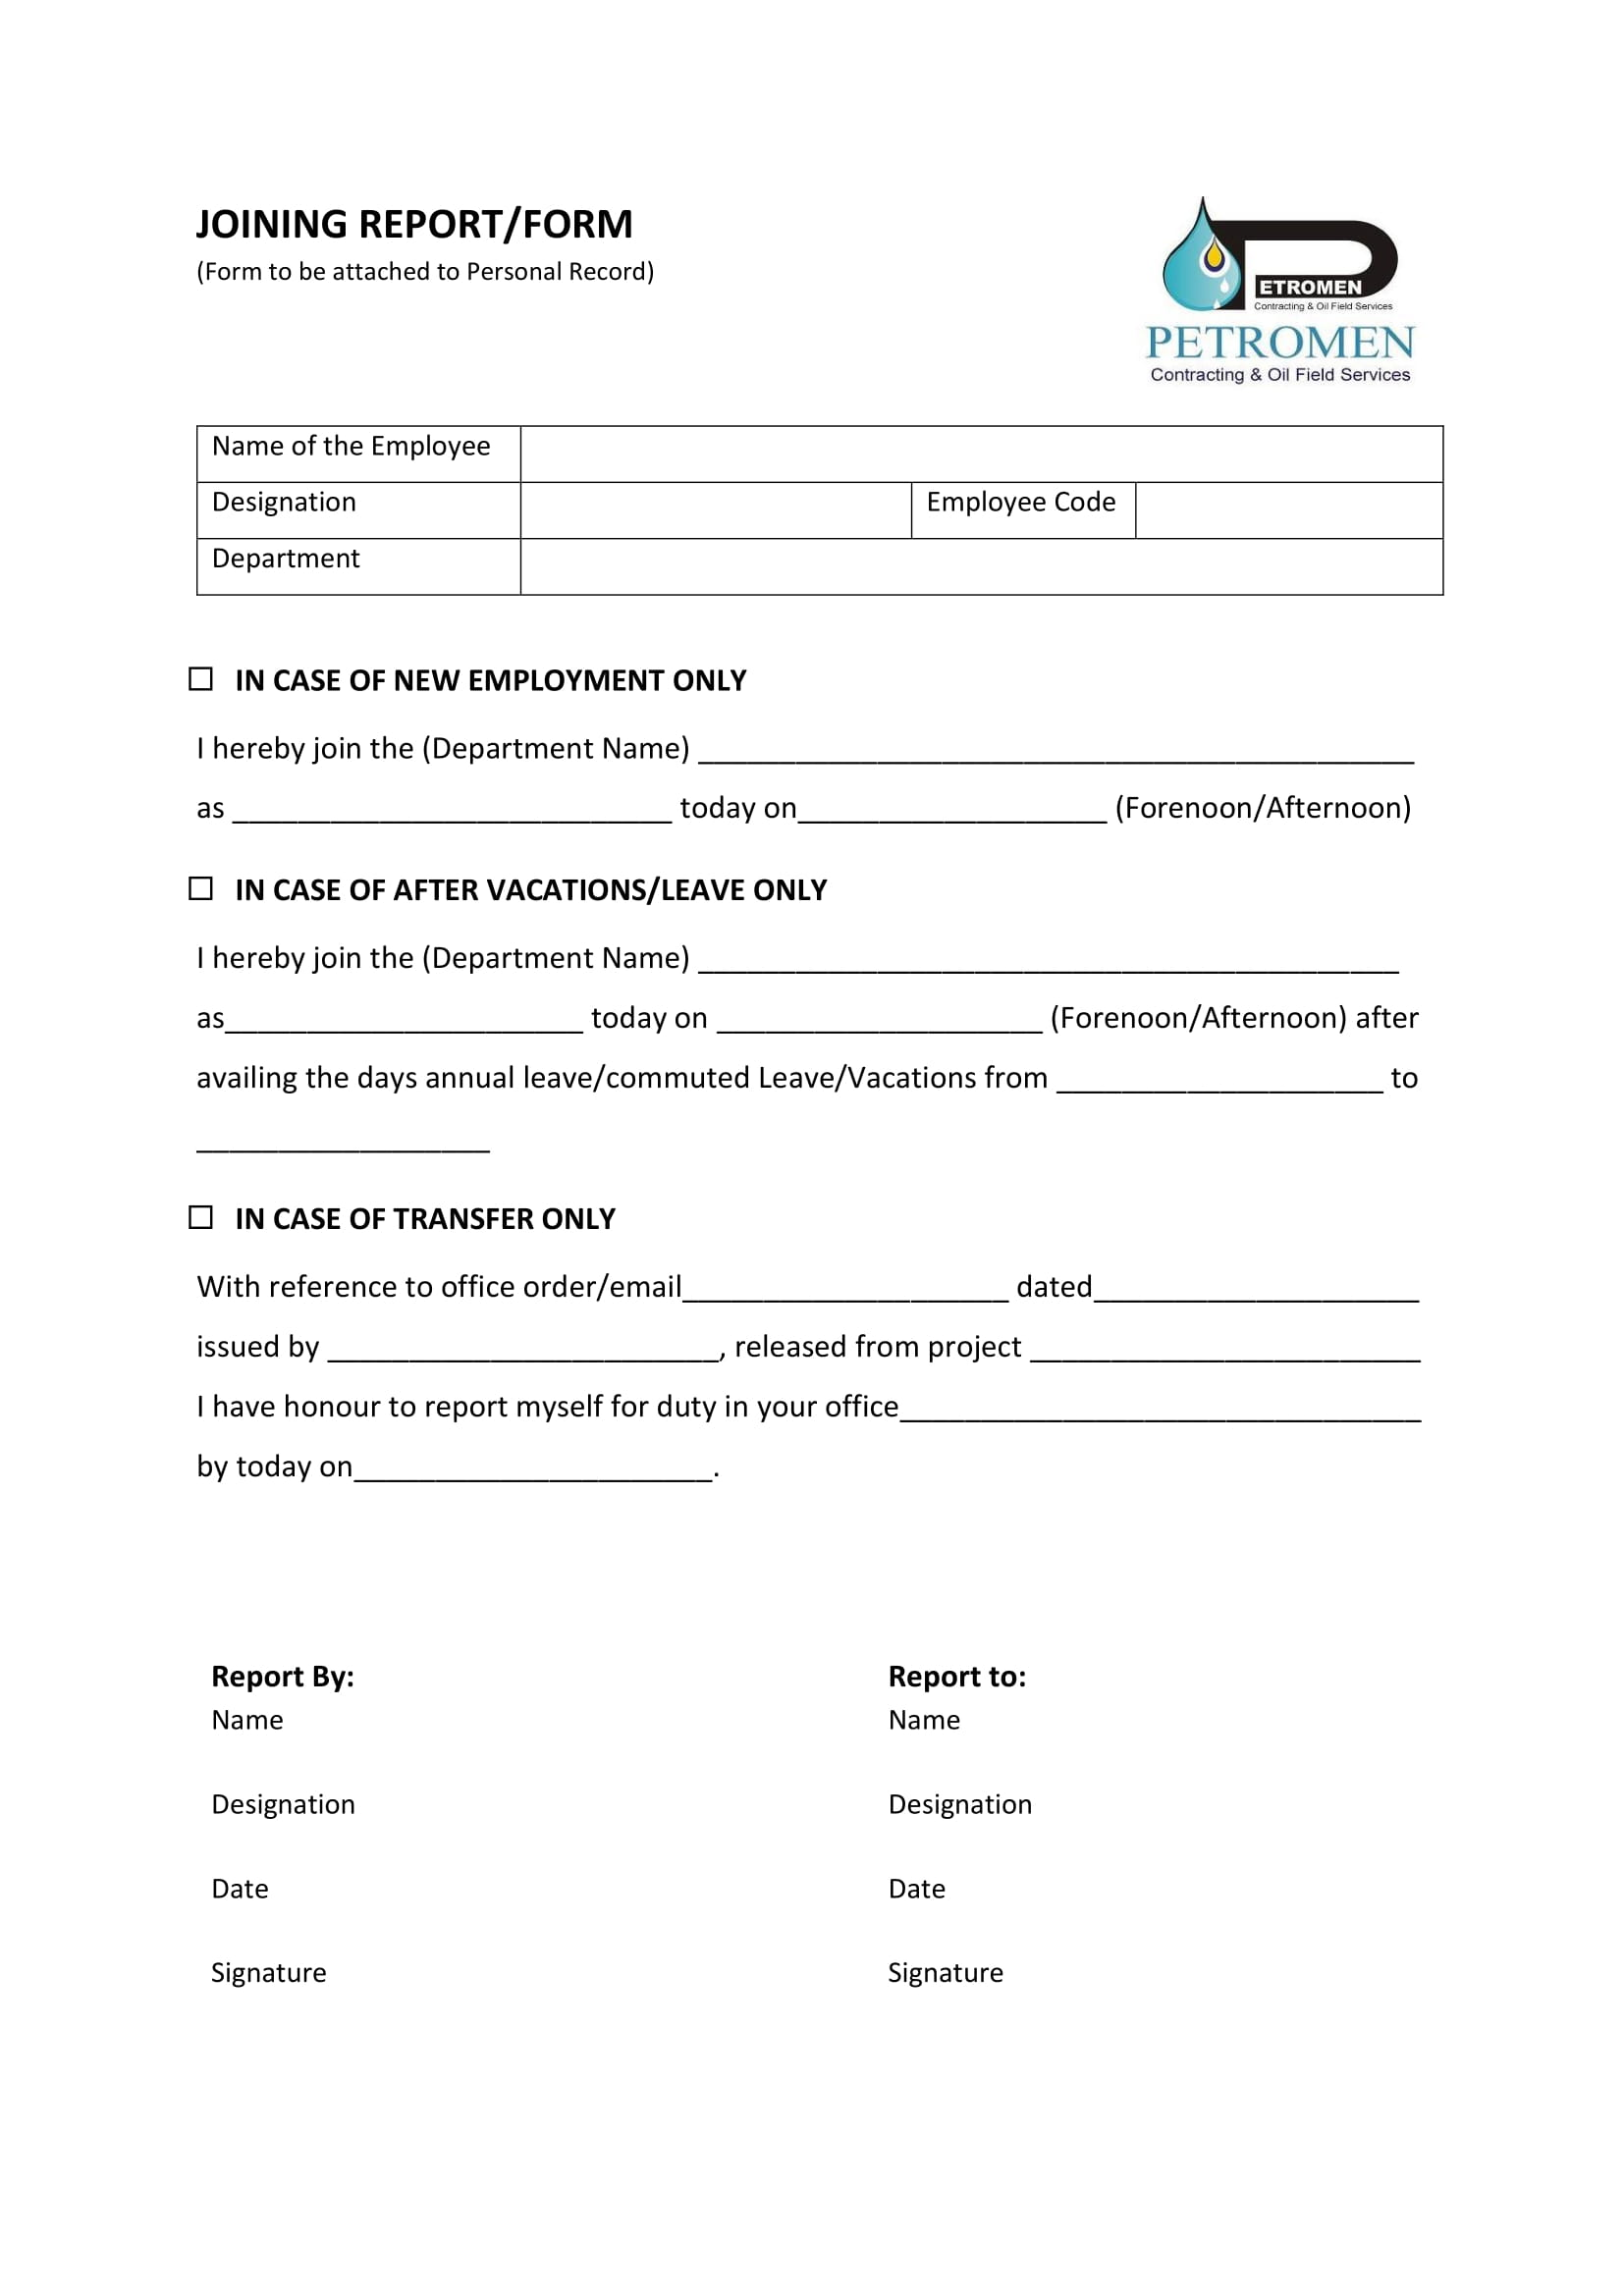 Free 14 Joining Report Forms In Pdf Doc